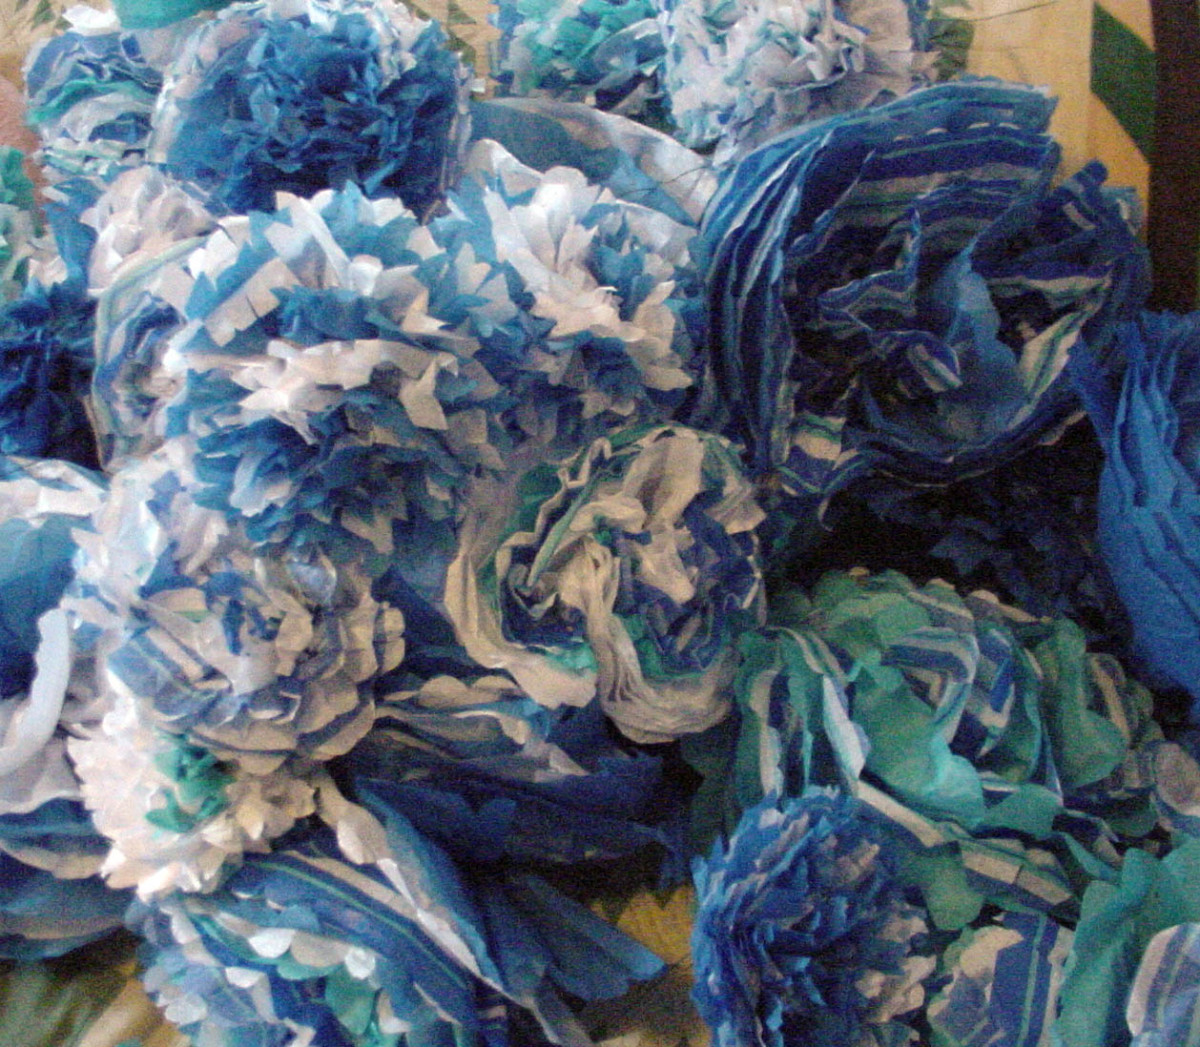 How to Make Tissue Paper Flowers - A Cheap, Whimsical Party Decoration and Favor